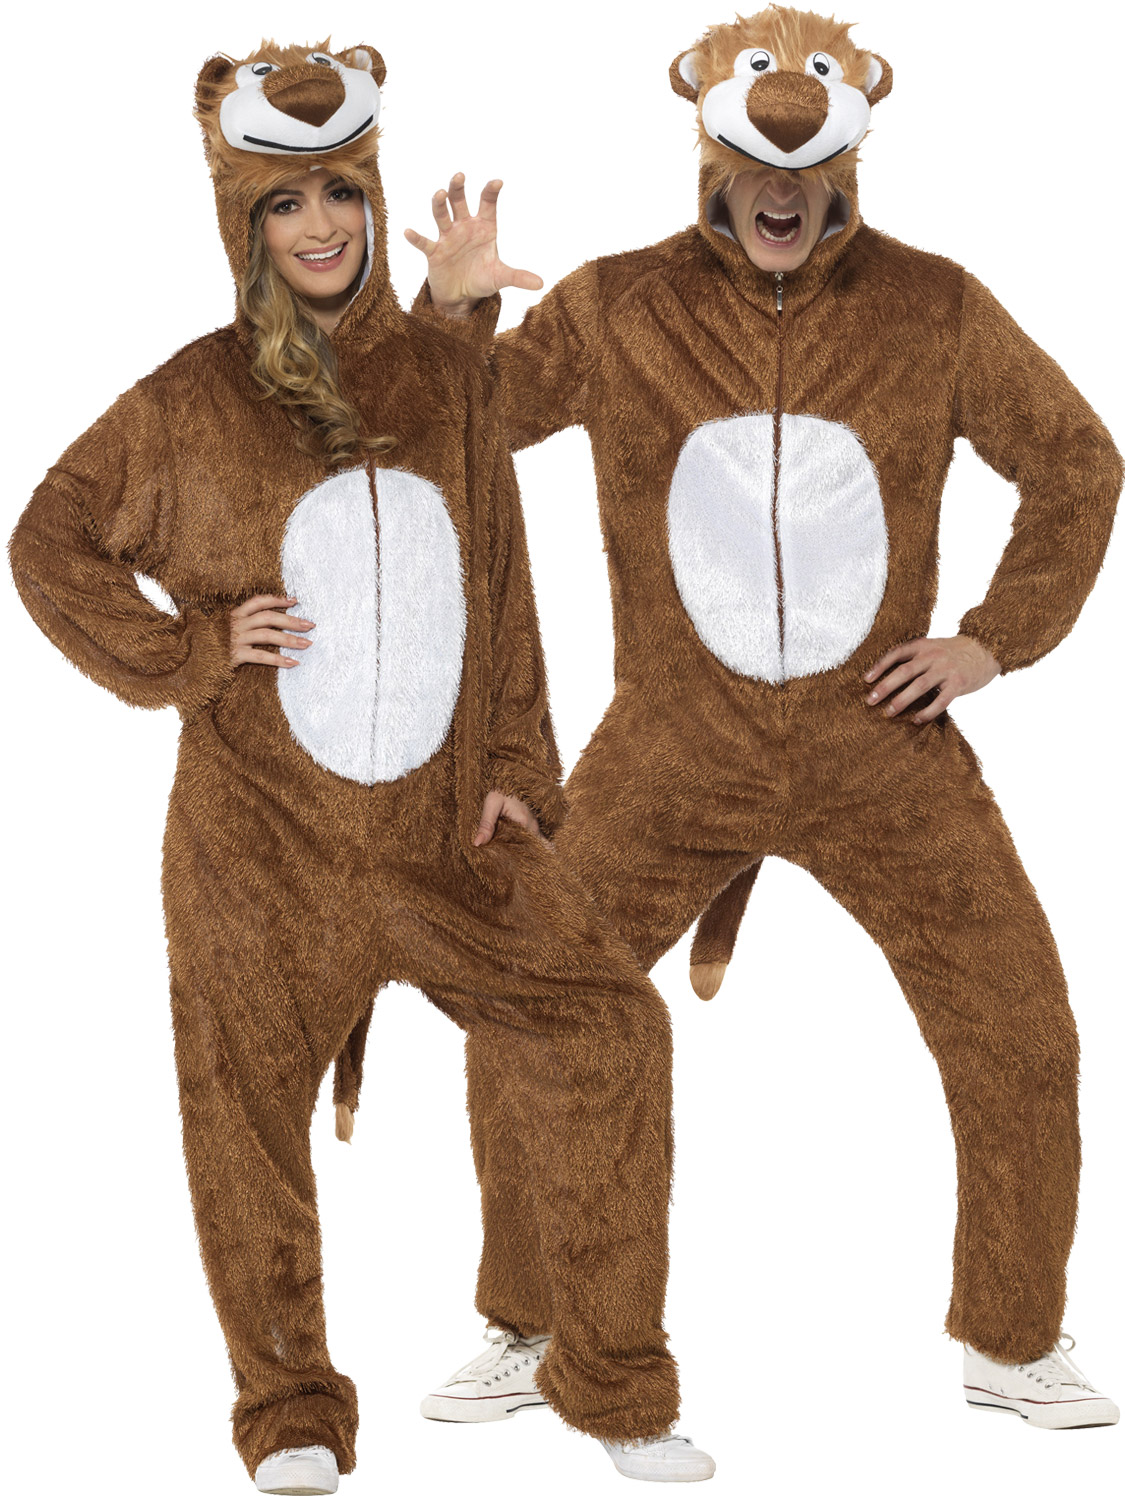 Adults lion costume mens ladies animal fancy dress zoo plush book transform yourself into a roaring lion with this adults onesie ideal for just lounging around or if you are going to an animal themed fancy dress party solutioingenieria Choice Image